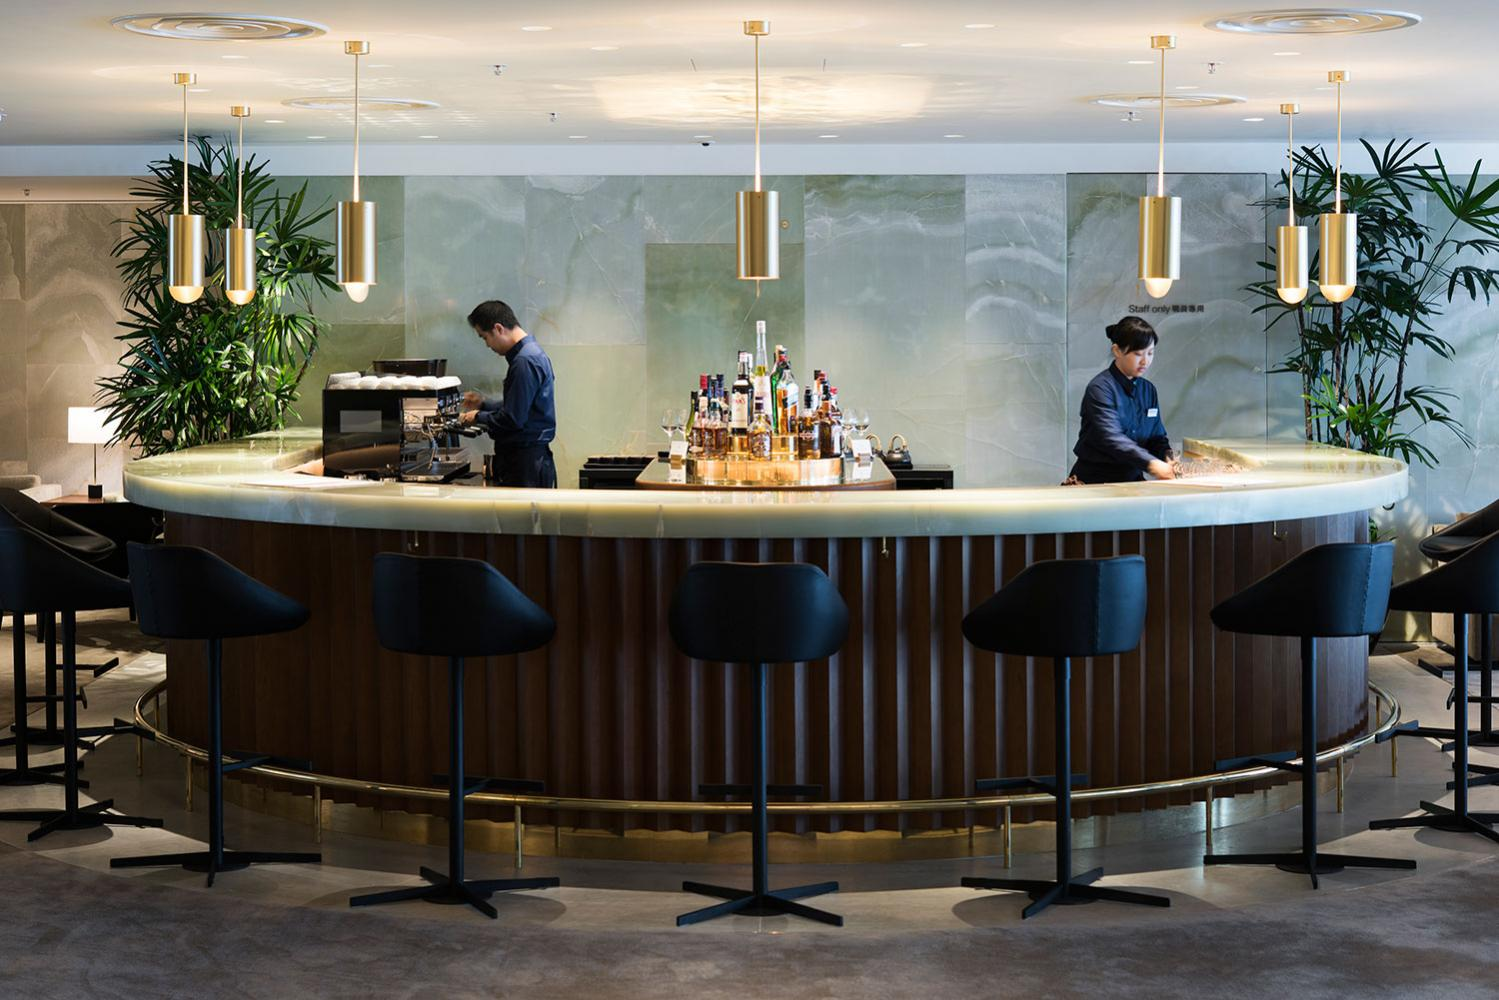 laurameroni hand made in italy satin brass suspension lamp featured at cathay pacific first class lounge the pier